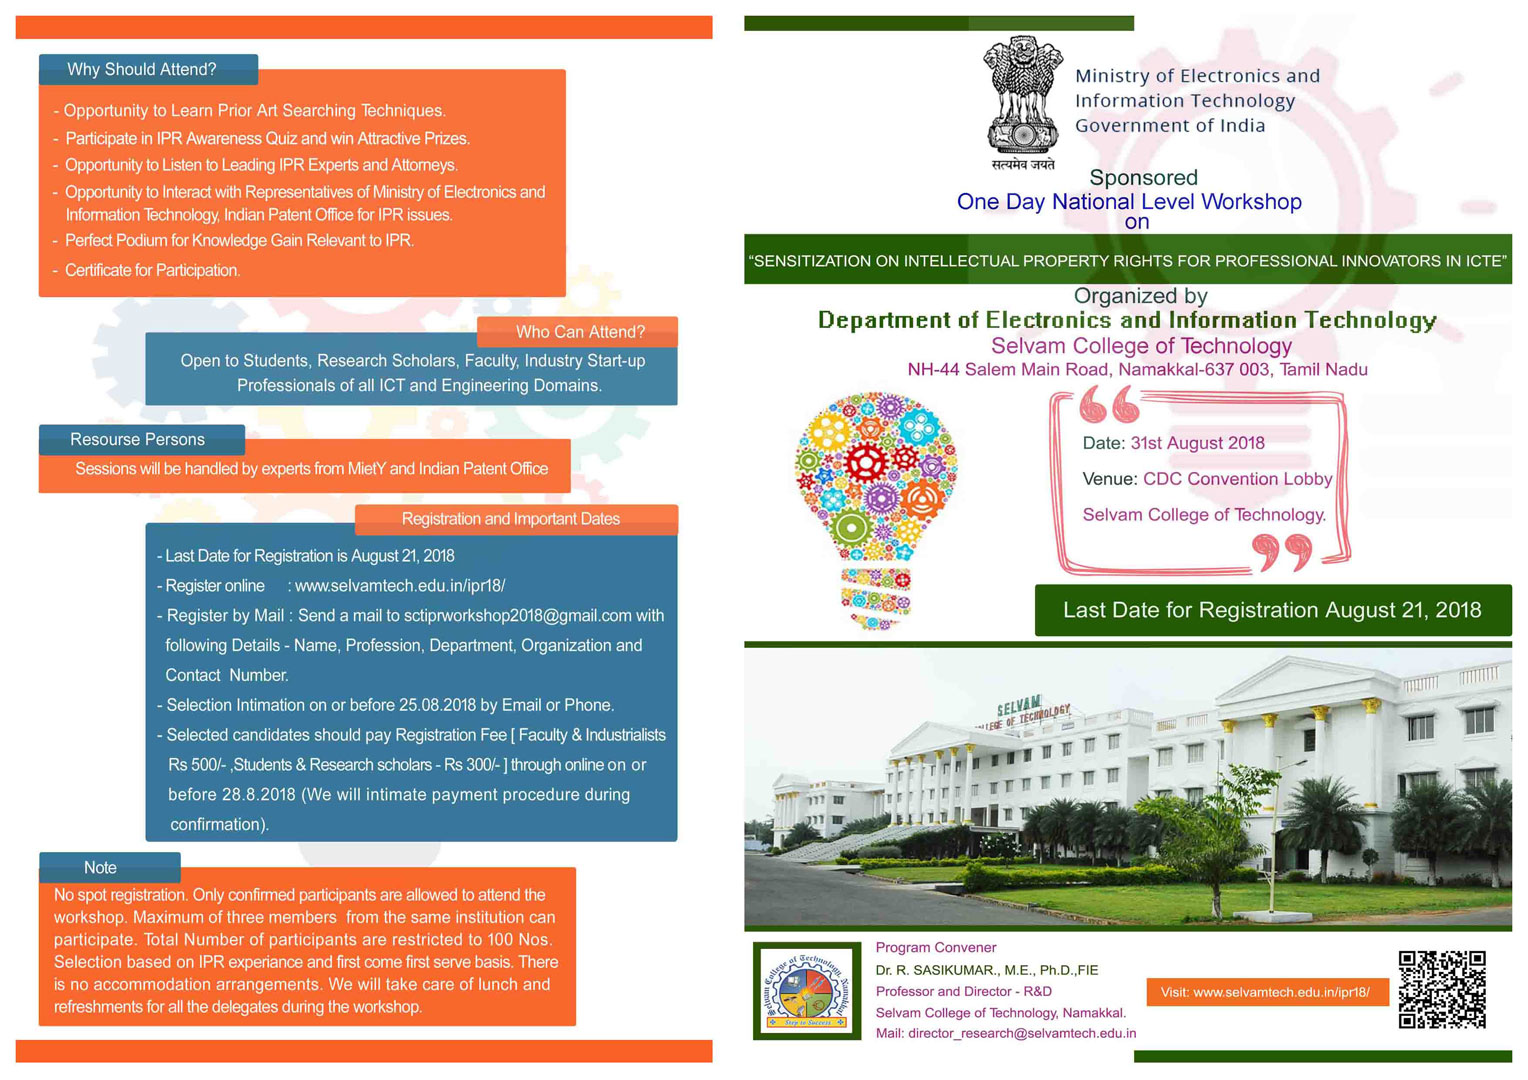 """One Day National Level Workshop on """"Sensitization on Intellectual Property Rights for Professional Innovators in ICTE"""" 1"""